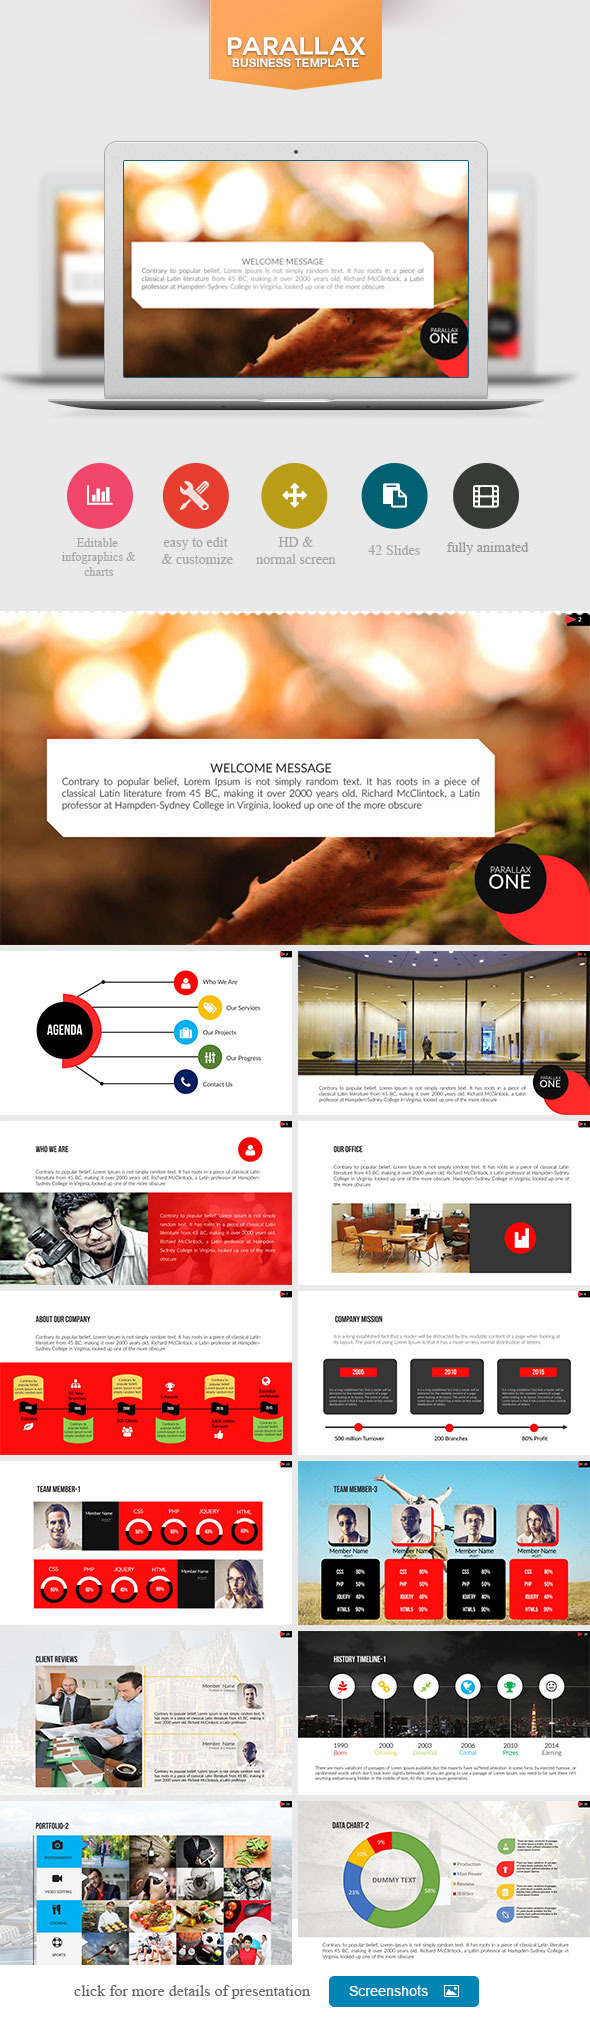 Parallax One Point Presentation Templates Paralax Preview